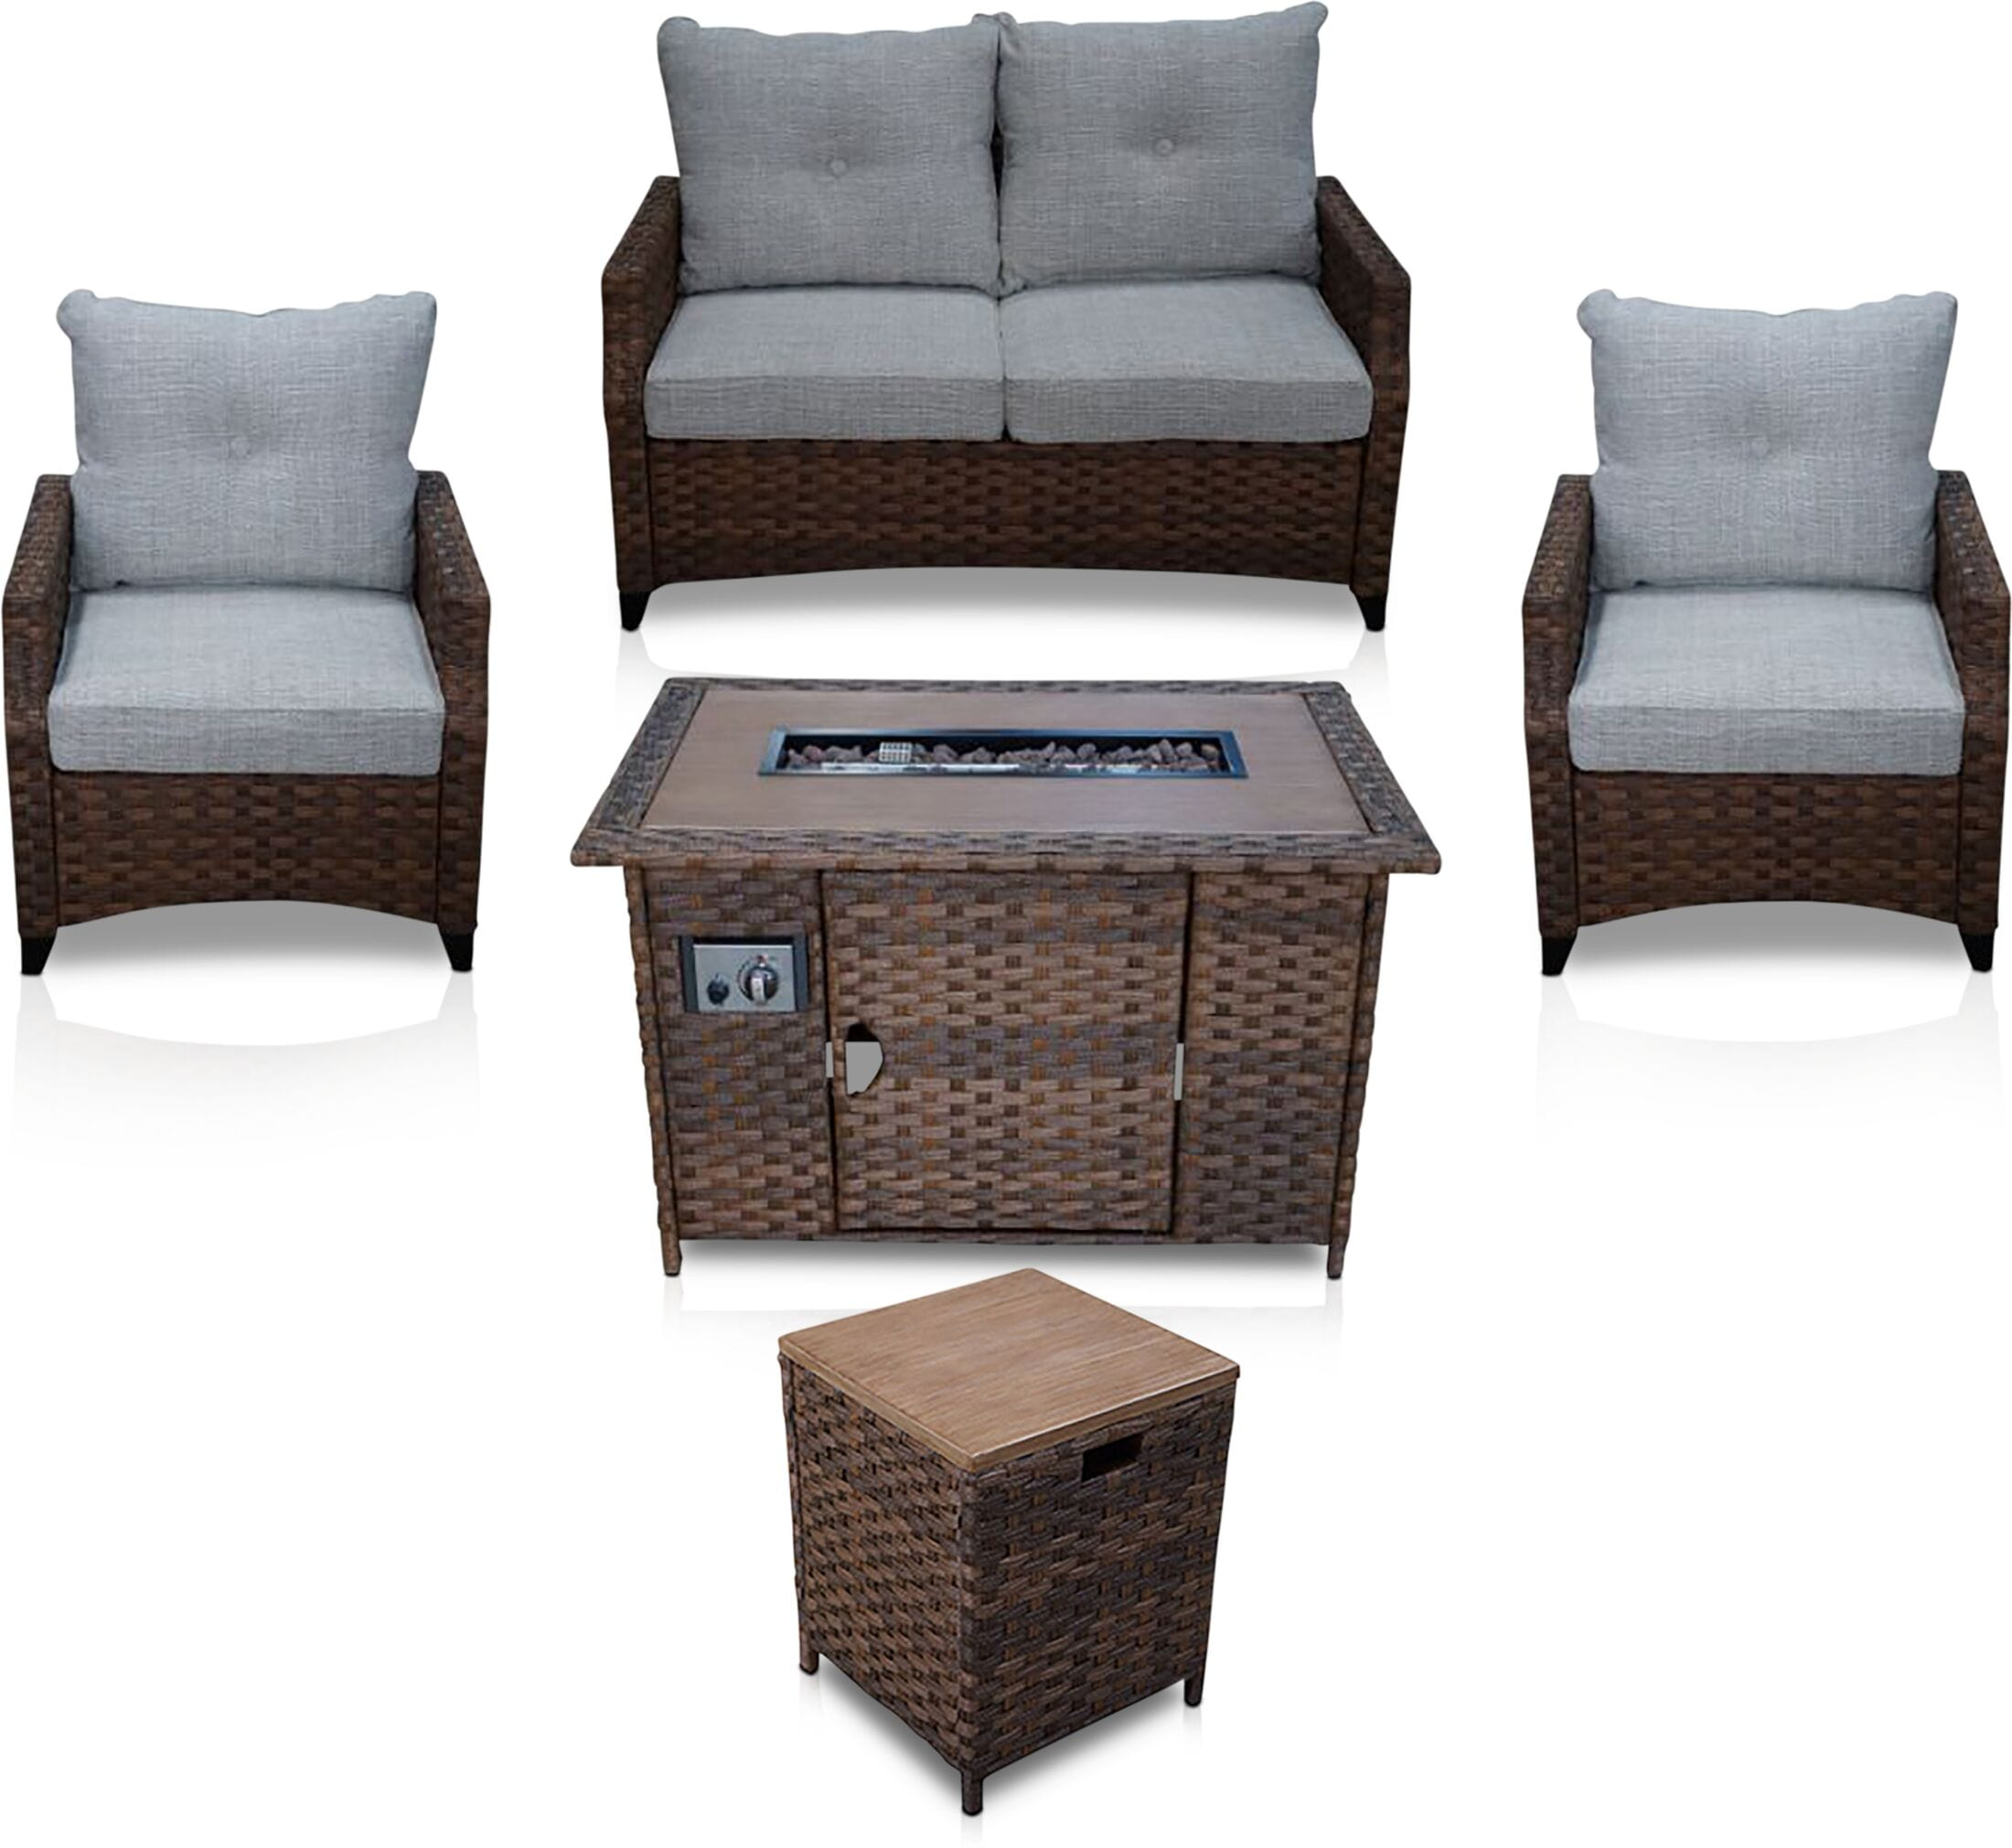 Outdoor Furniture - Santa Cruz Outdoor Loveseat, Set of 2 Chairs, End Table and Fire Table